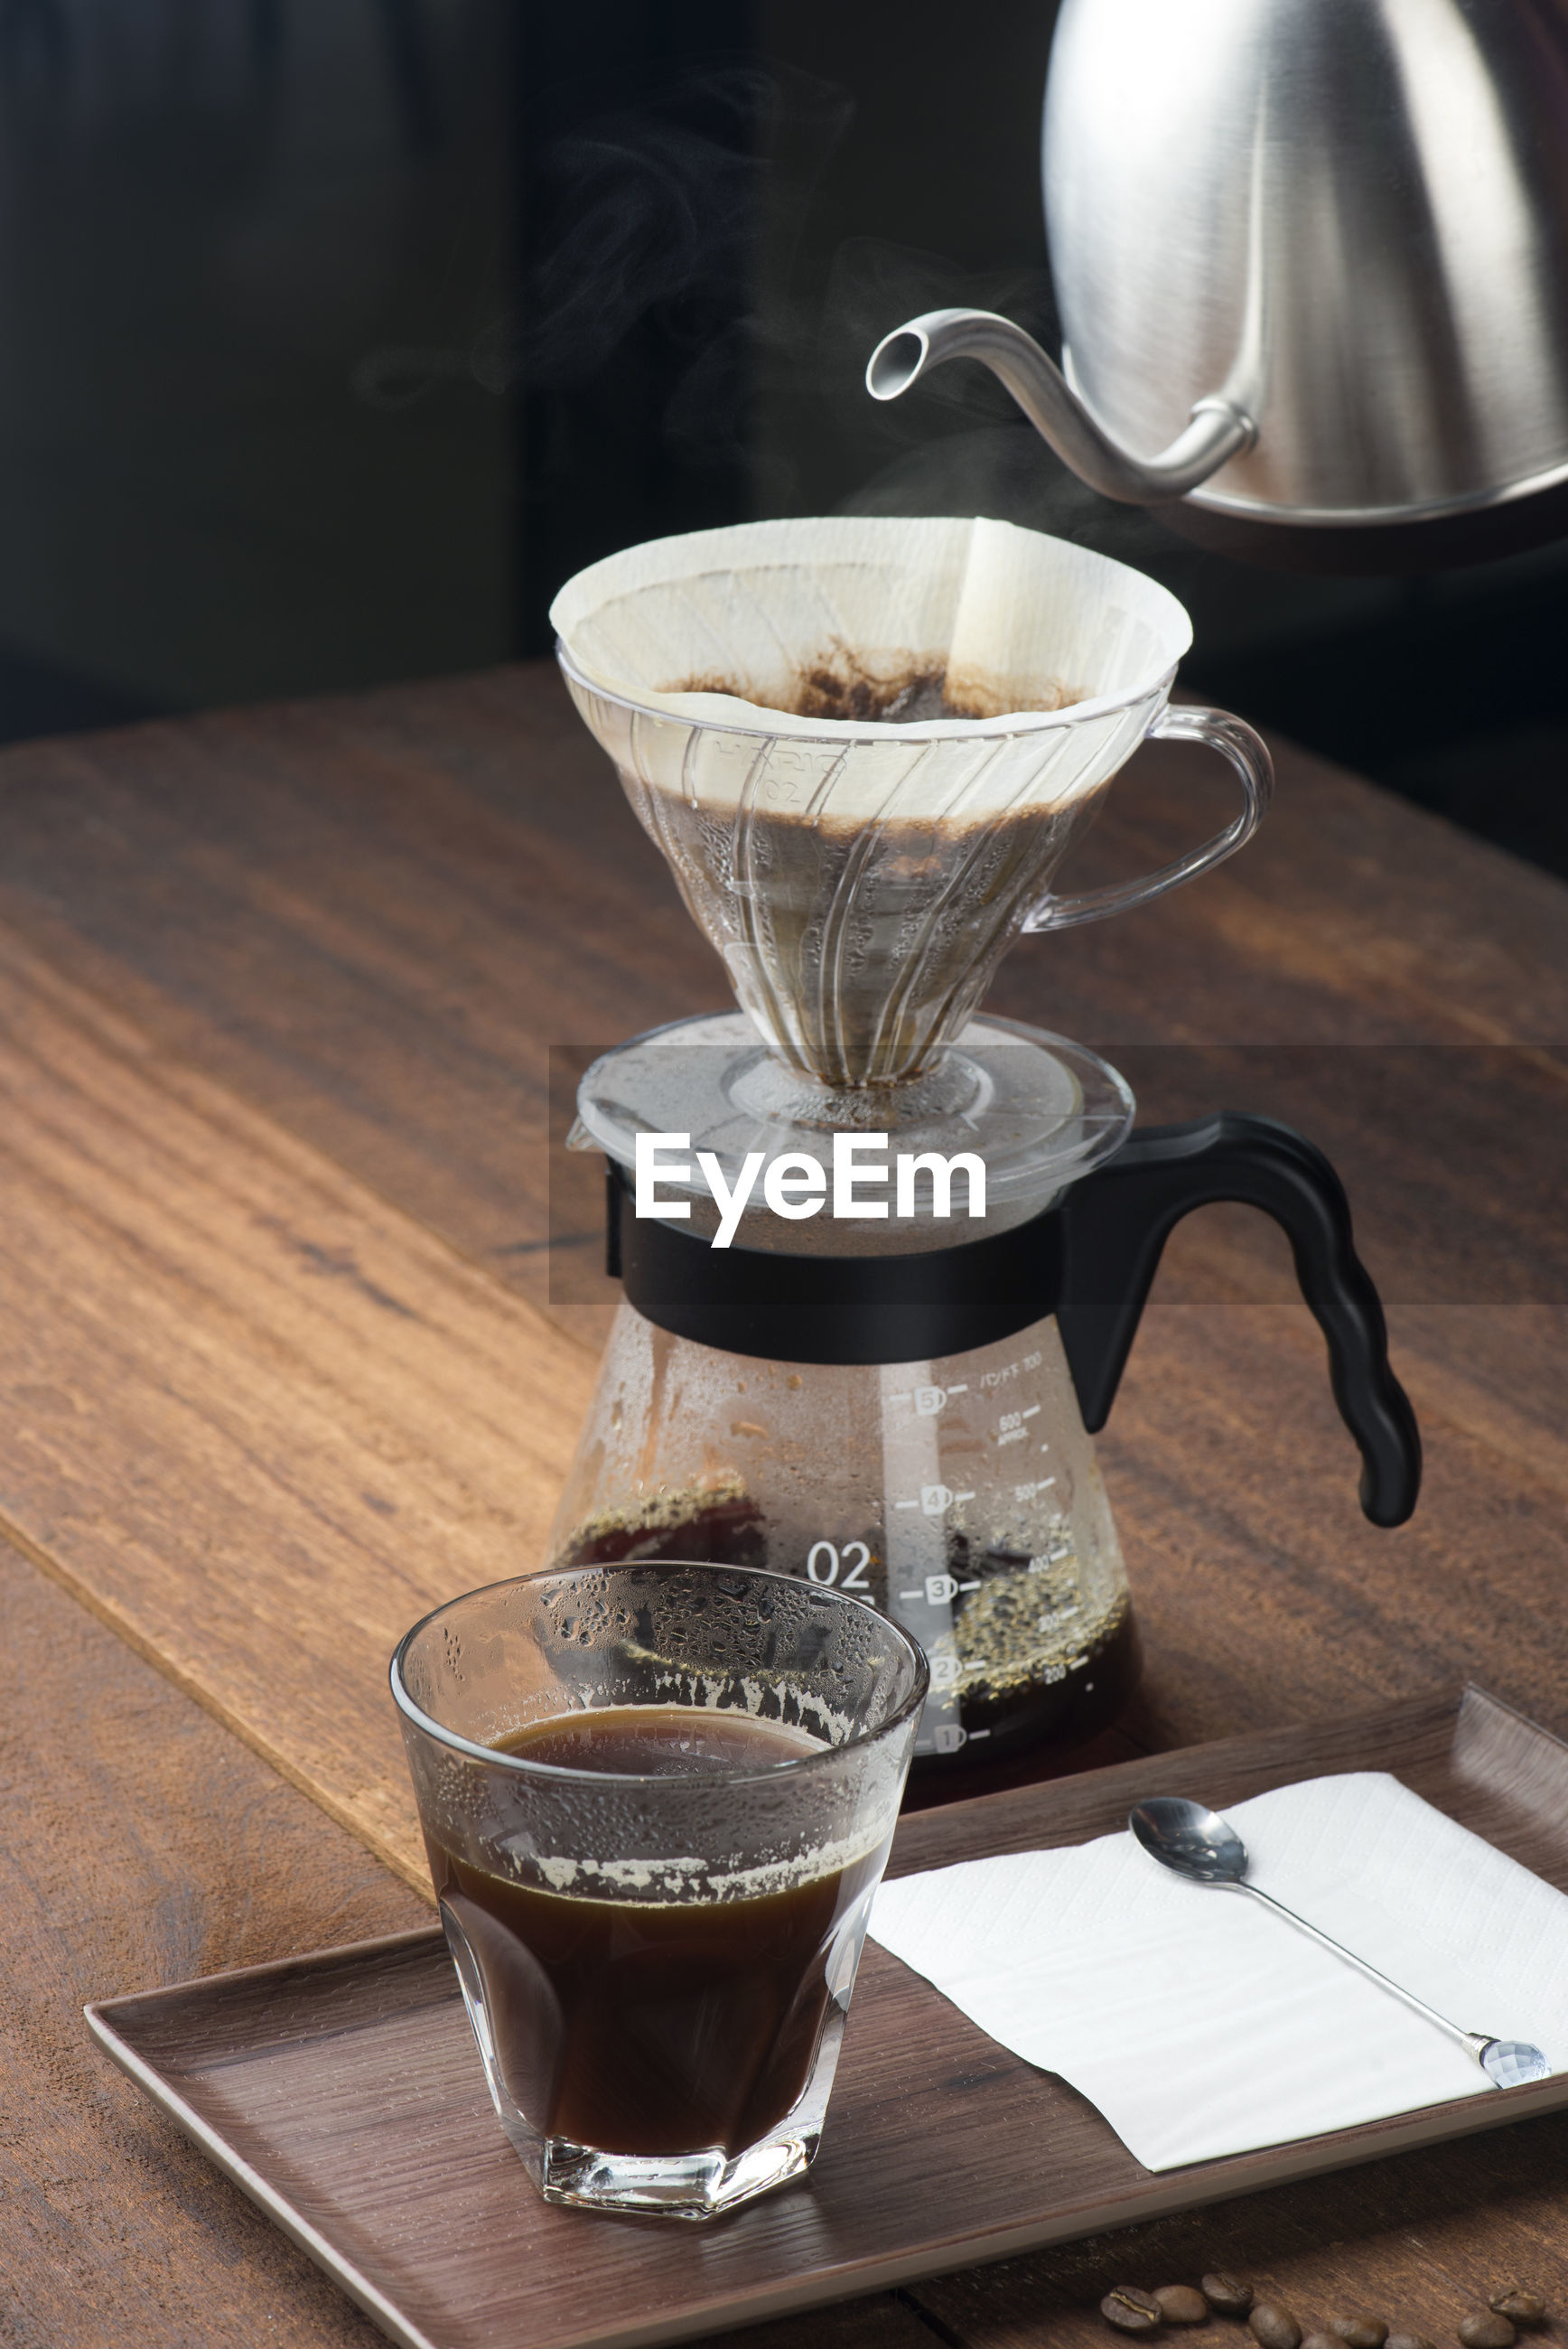 Coffee filter and drinking glass on table